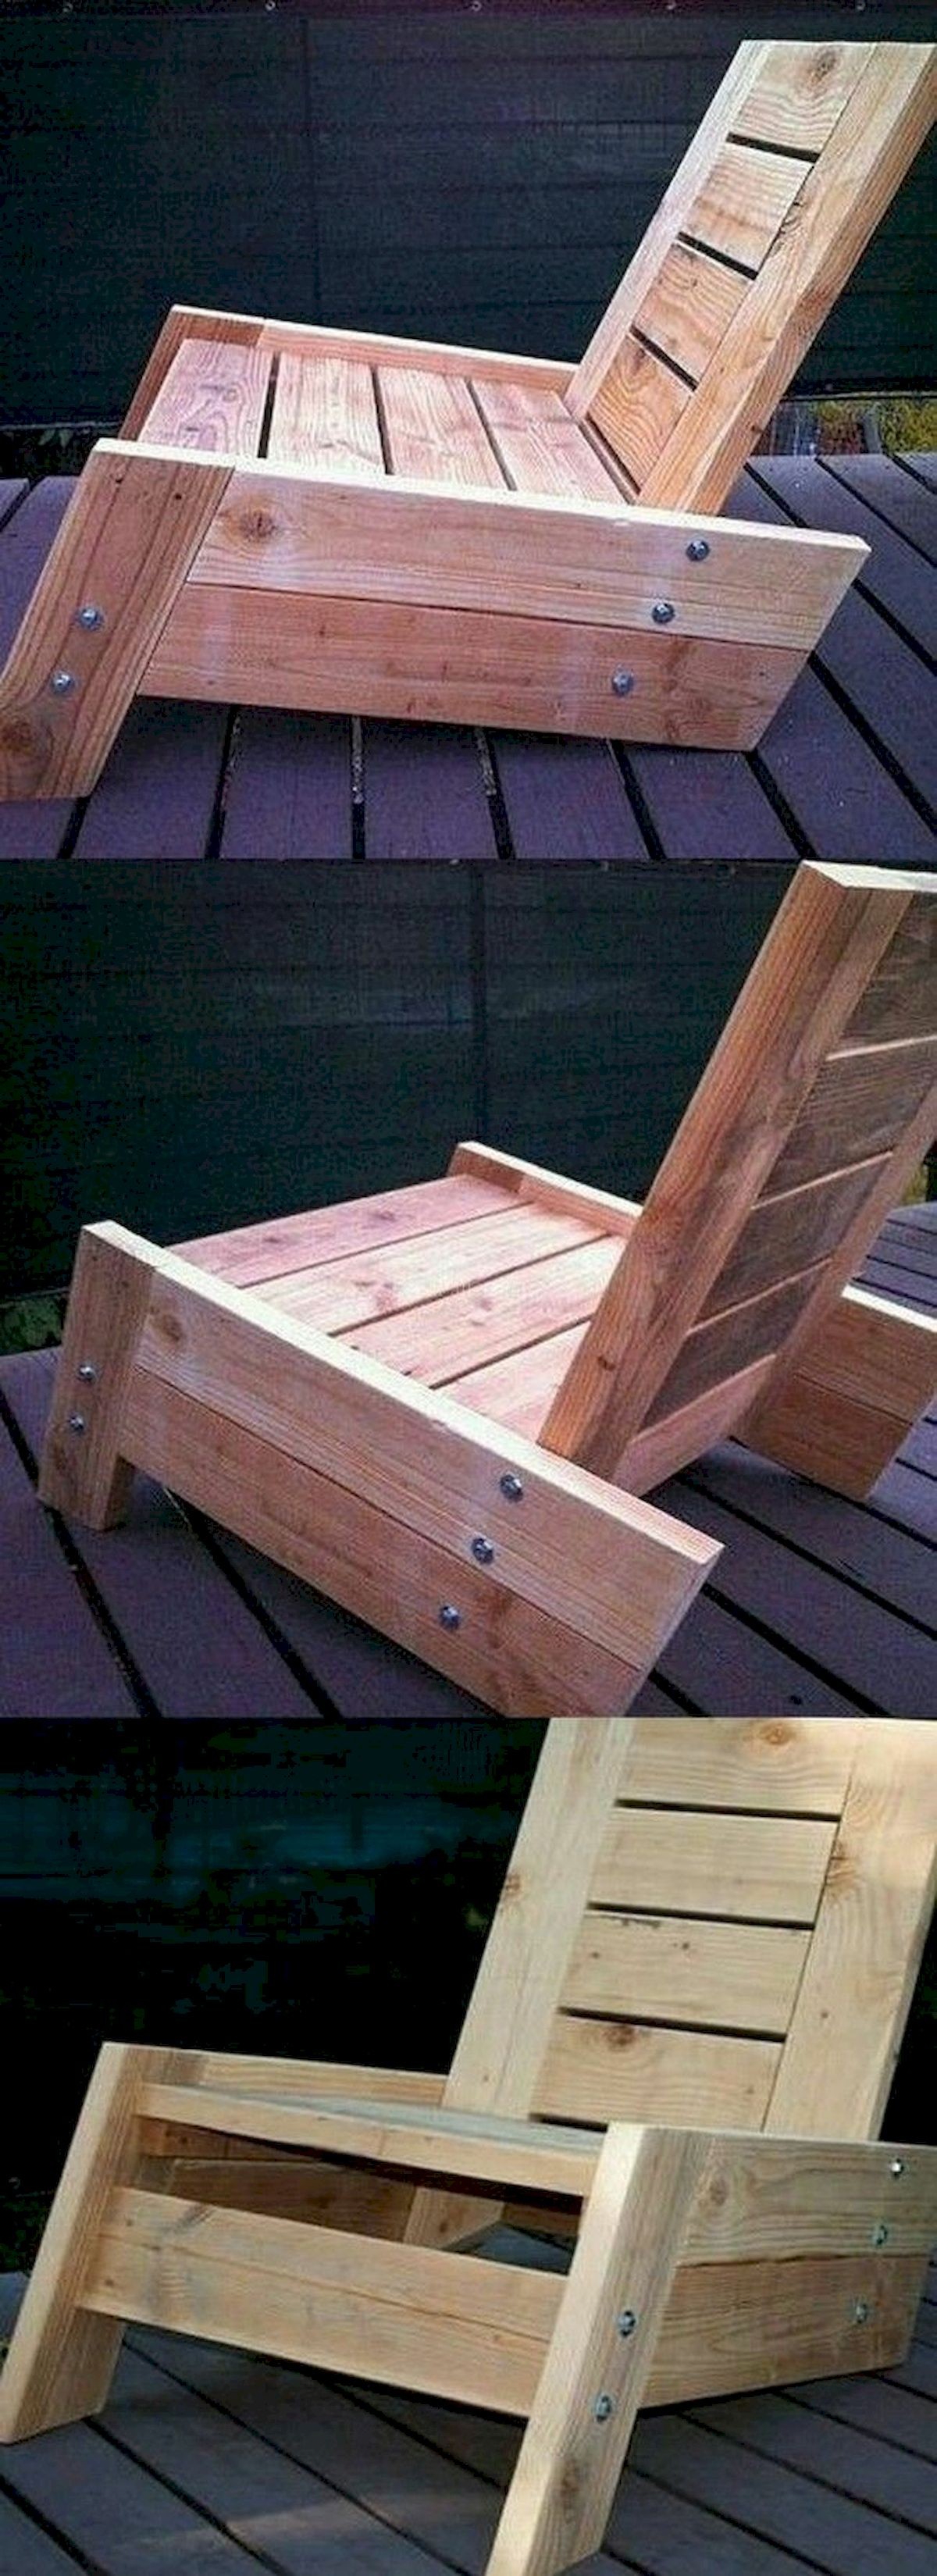 60 Easy DIY Wood Furniture Projects Ideas (43)